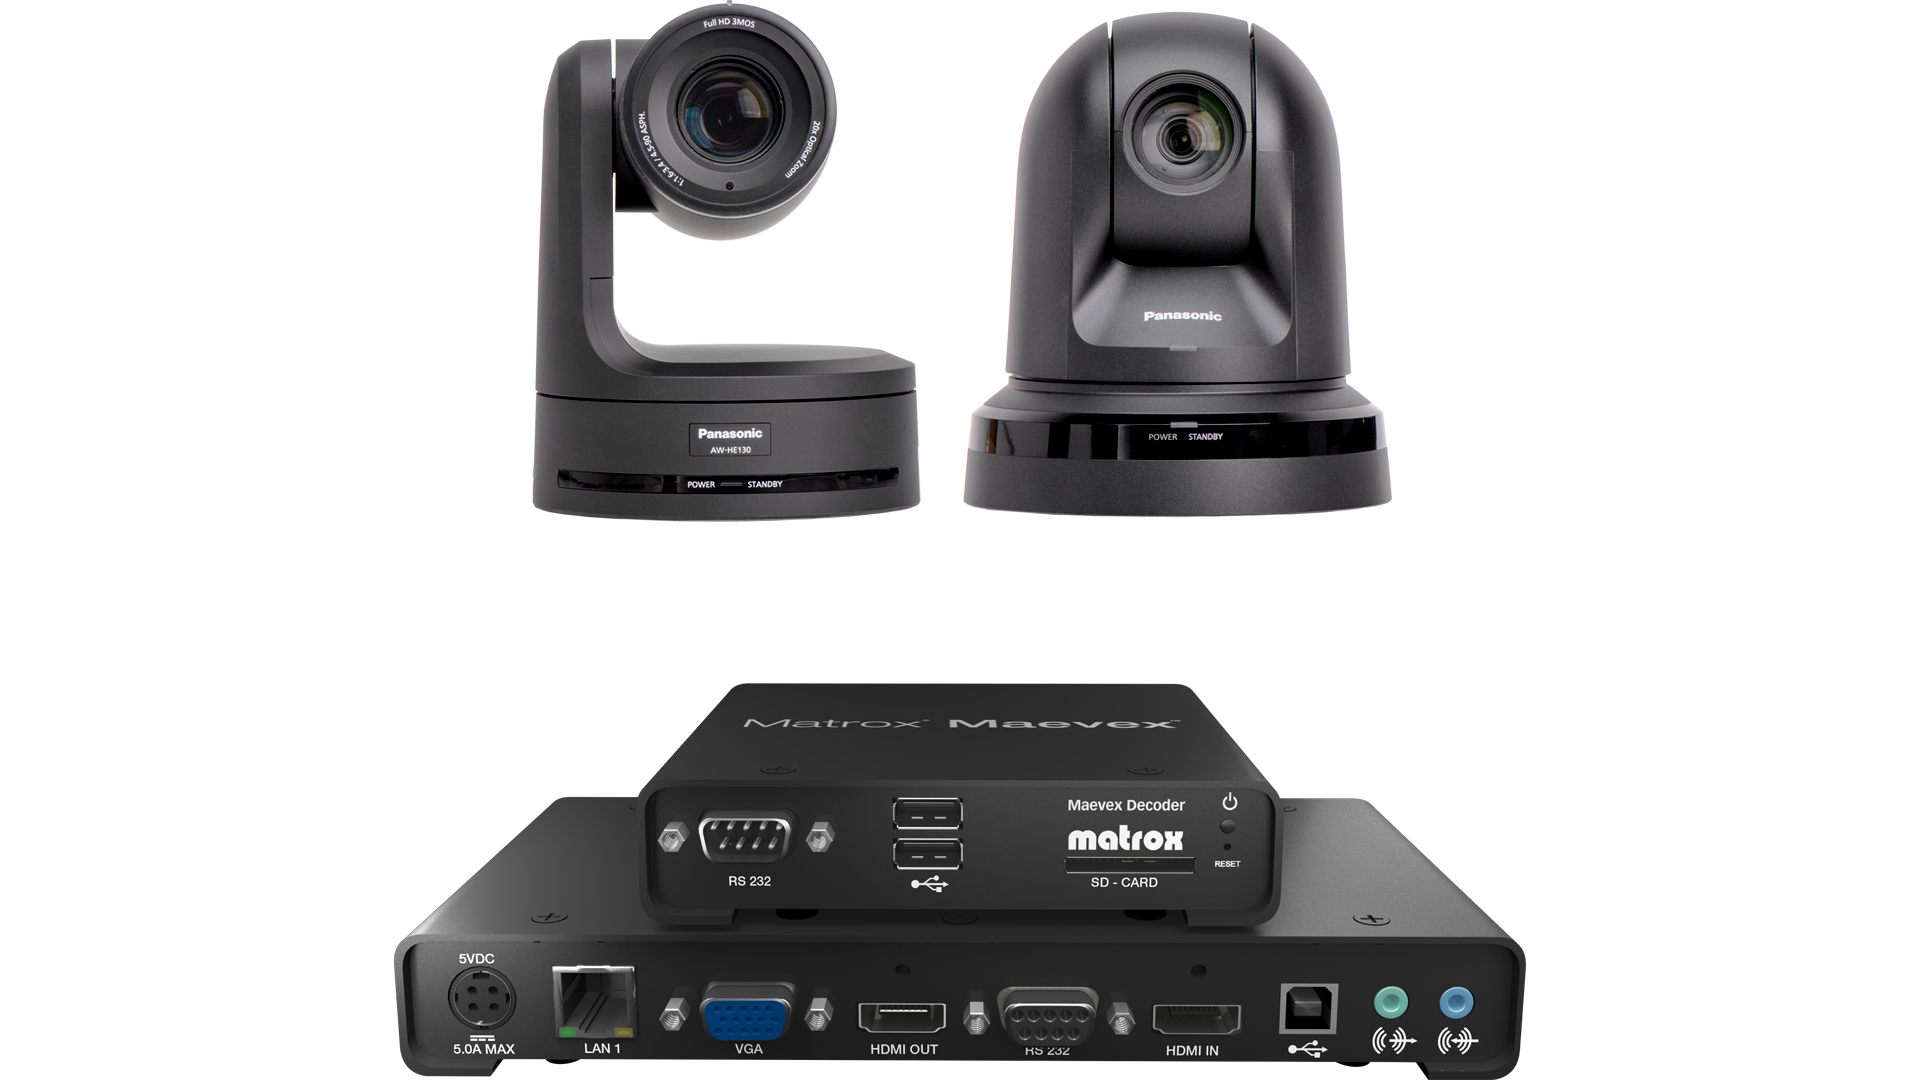 Panasonic AW-HE130 & AW-HE40 cameras stream full HD H.264 signals to Maevex decoders for review and display.